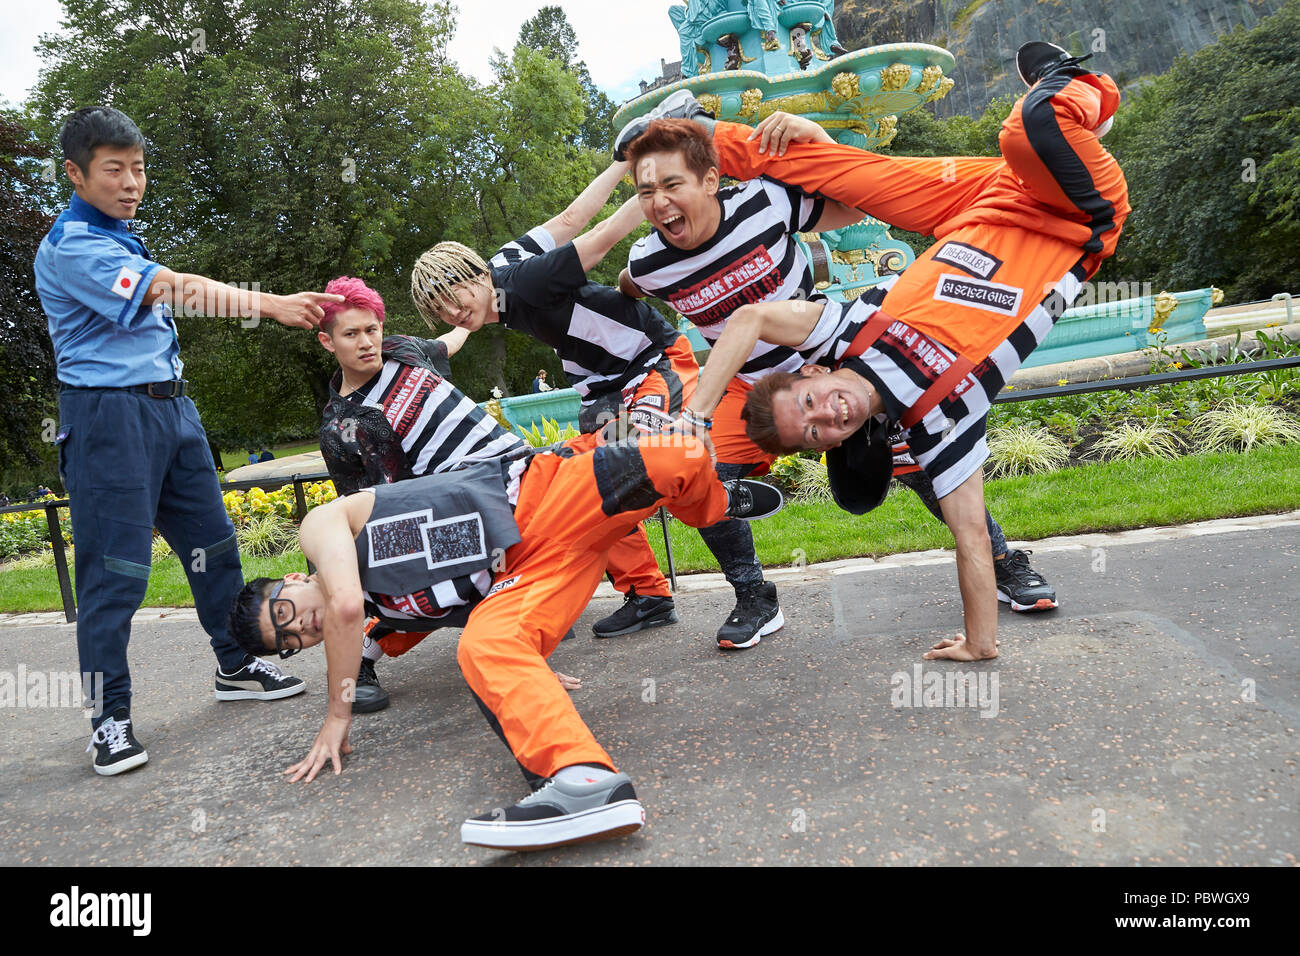 "Edinburgh, UK. 30th July 2018. Edinburgh Underbelly European premiere of ""Break Free"" featuring champion break dancers, each with world titles, who are ready to carve up the floor to reach dizzying new heights. Direct from Tokyo, this crew are world-class urban dancers, fusing the very best in skill and technique, state of the art technology and a thumping soundscape, alongside breath-taking tricks! Break Free is the ultimate breakdance fairy-tale. Credit: Andrew Eaton/Alamy Live News - Stock Image"